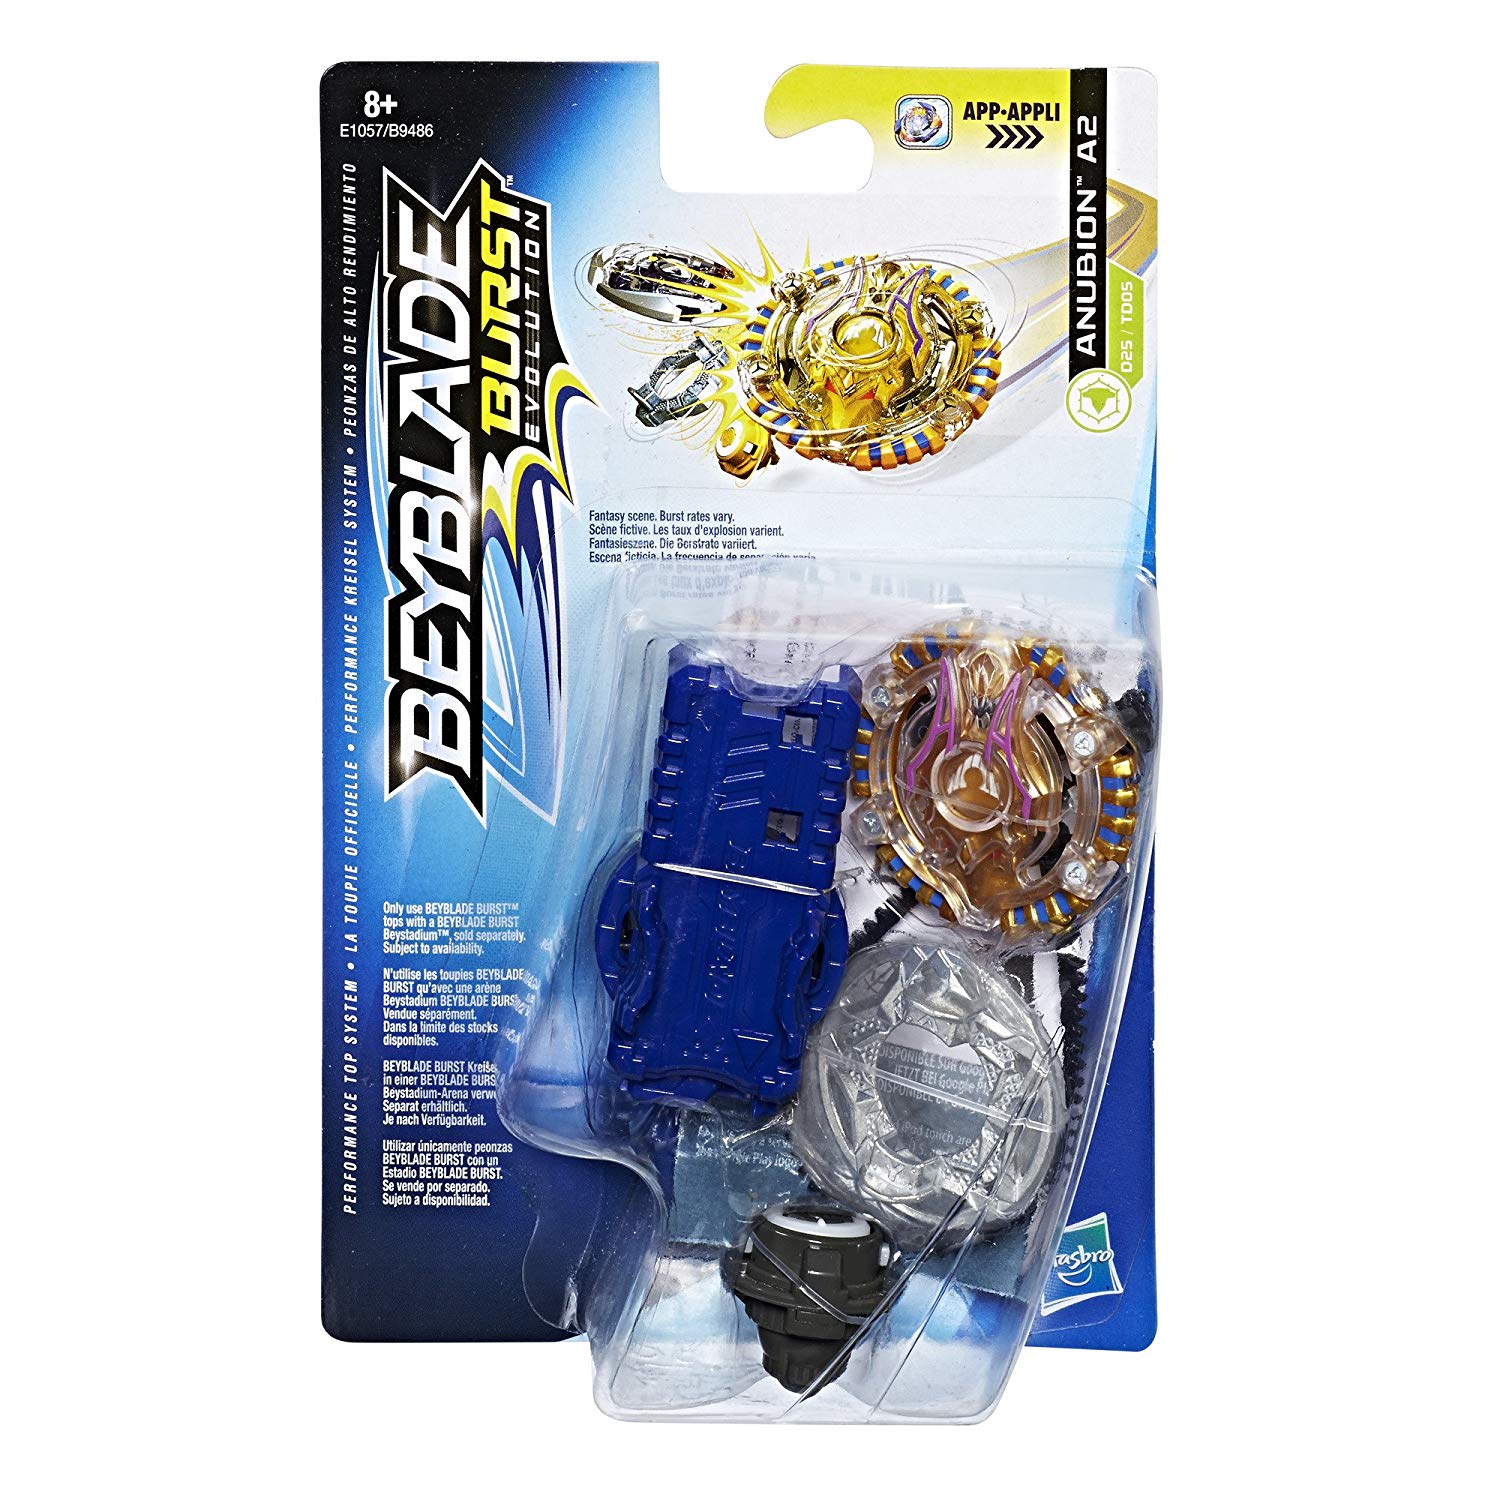 Beyblade–anubion A2Toy Starter Pack, E1057